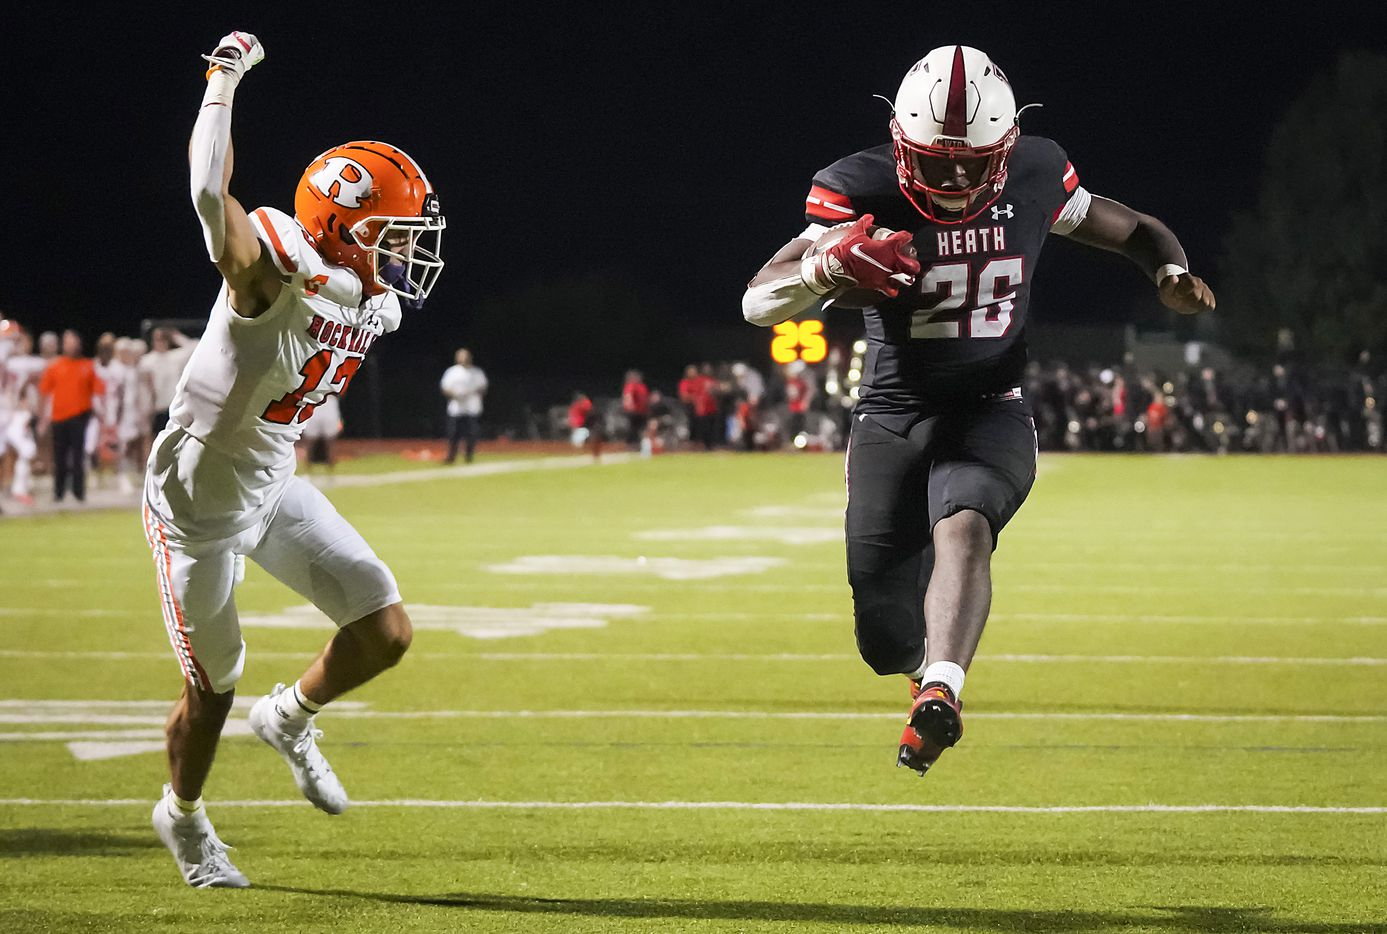 Rockwall-Heath running back  Zach Evans (26) scores on a 3-yard touchdown run past Rockwall defensive back Cadien Robinson (13) during overtime in a District 10-6A high school football game at Wilkerson-Sanders Stadium on Friday, Sept. 24, 2021, in Rockwall.  Rockwall-Heath won the game 79-71 in double overtime.